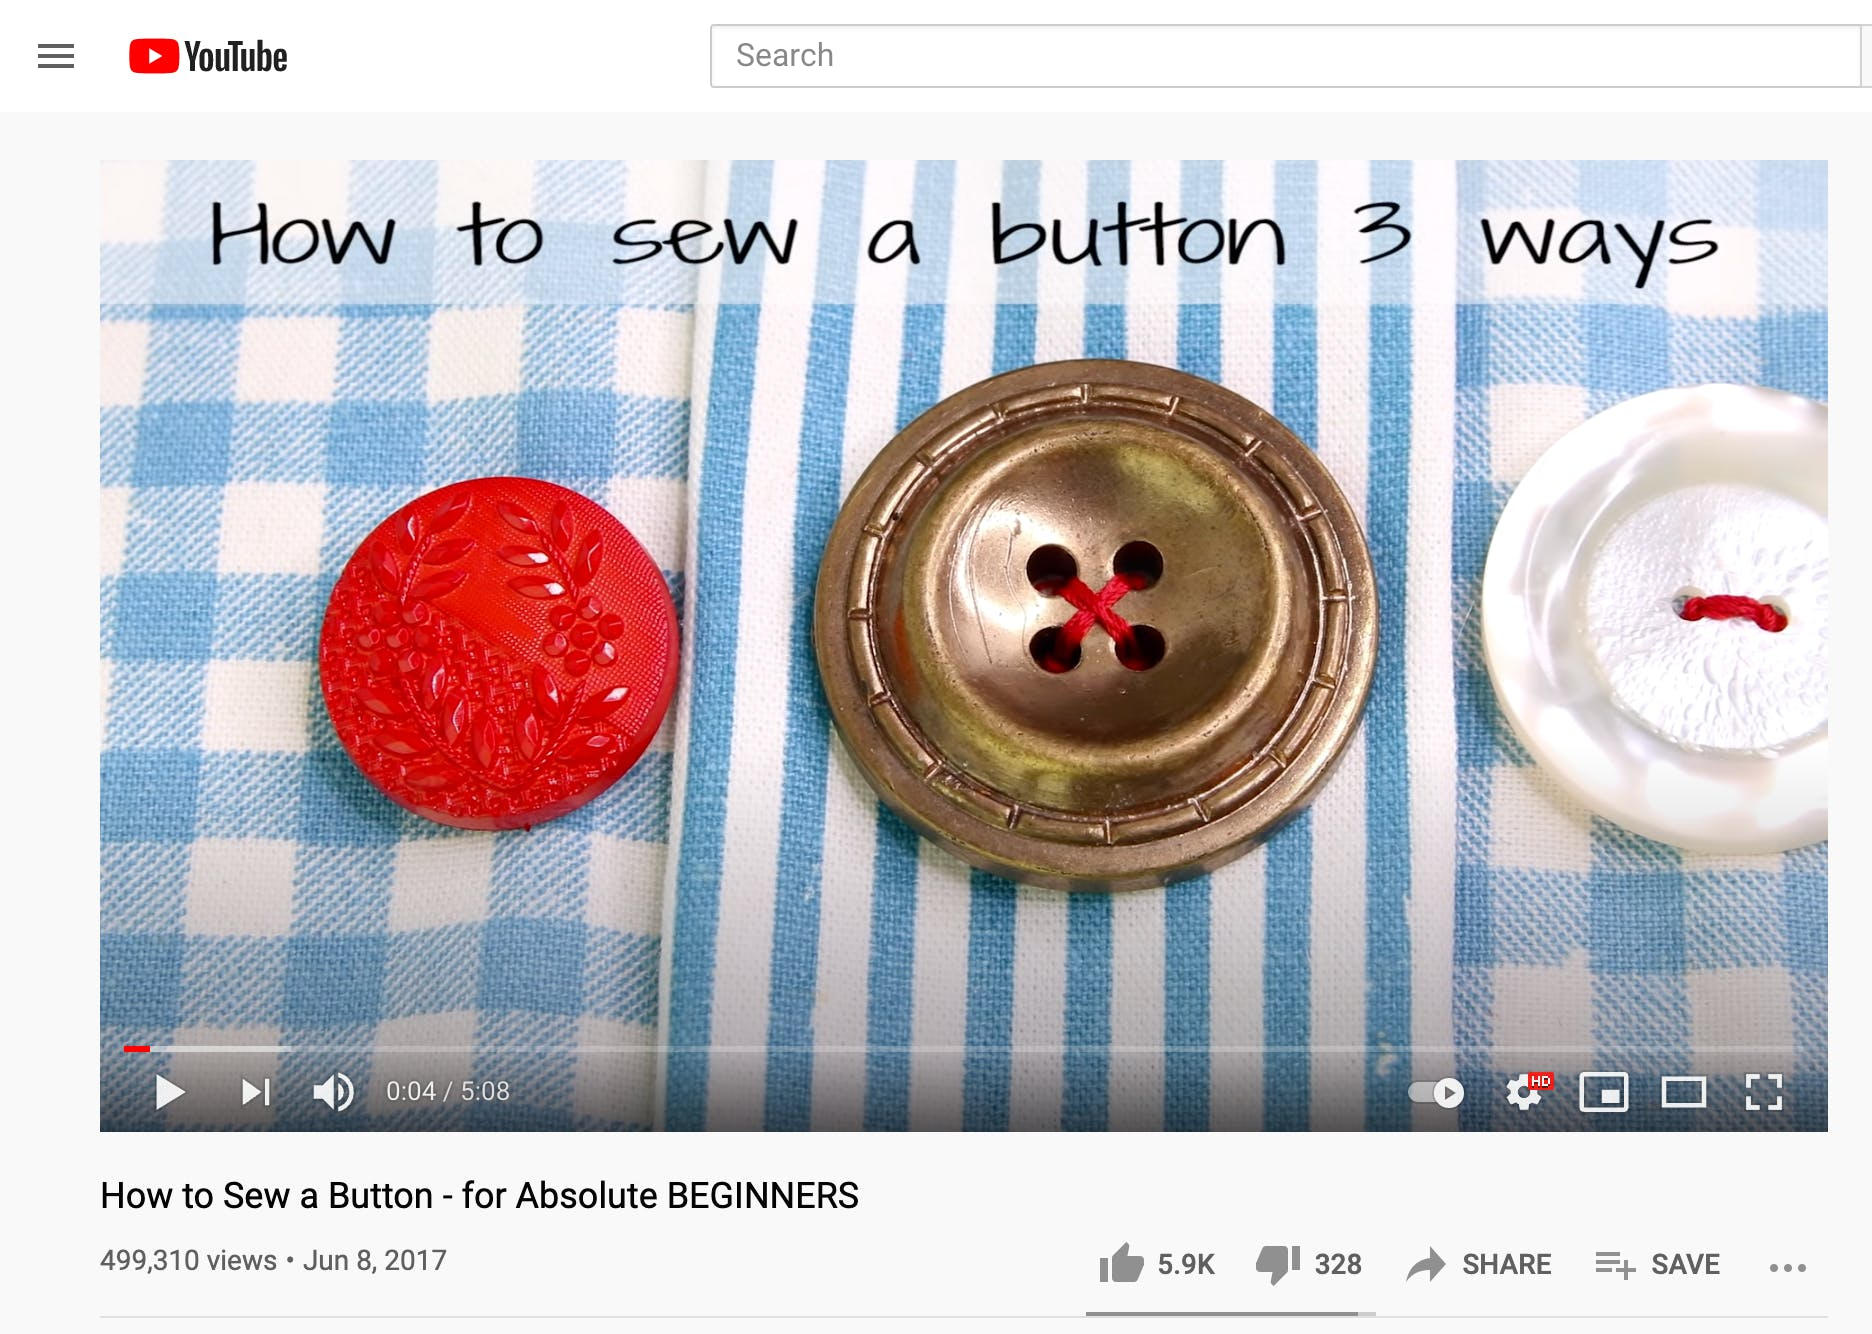 Screenshot of YouTube video about how to sew a button